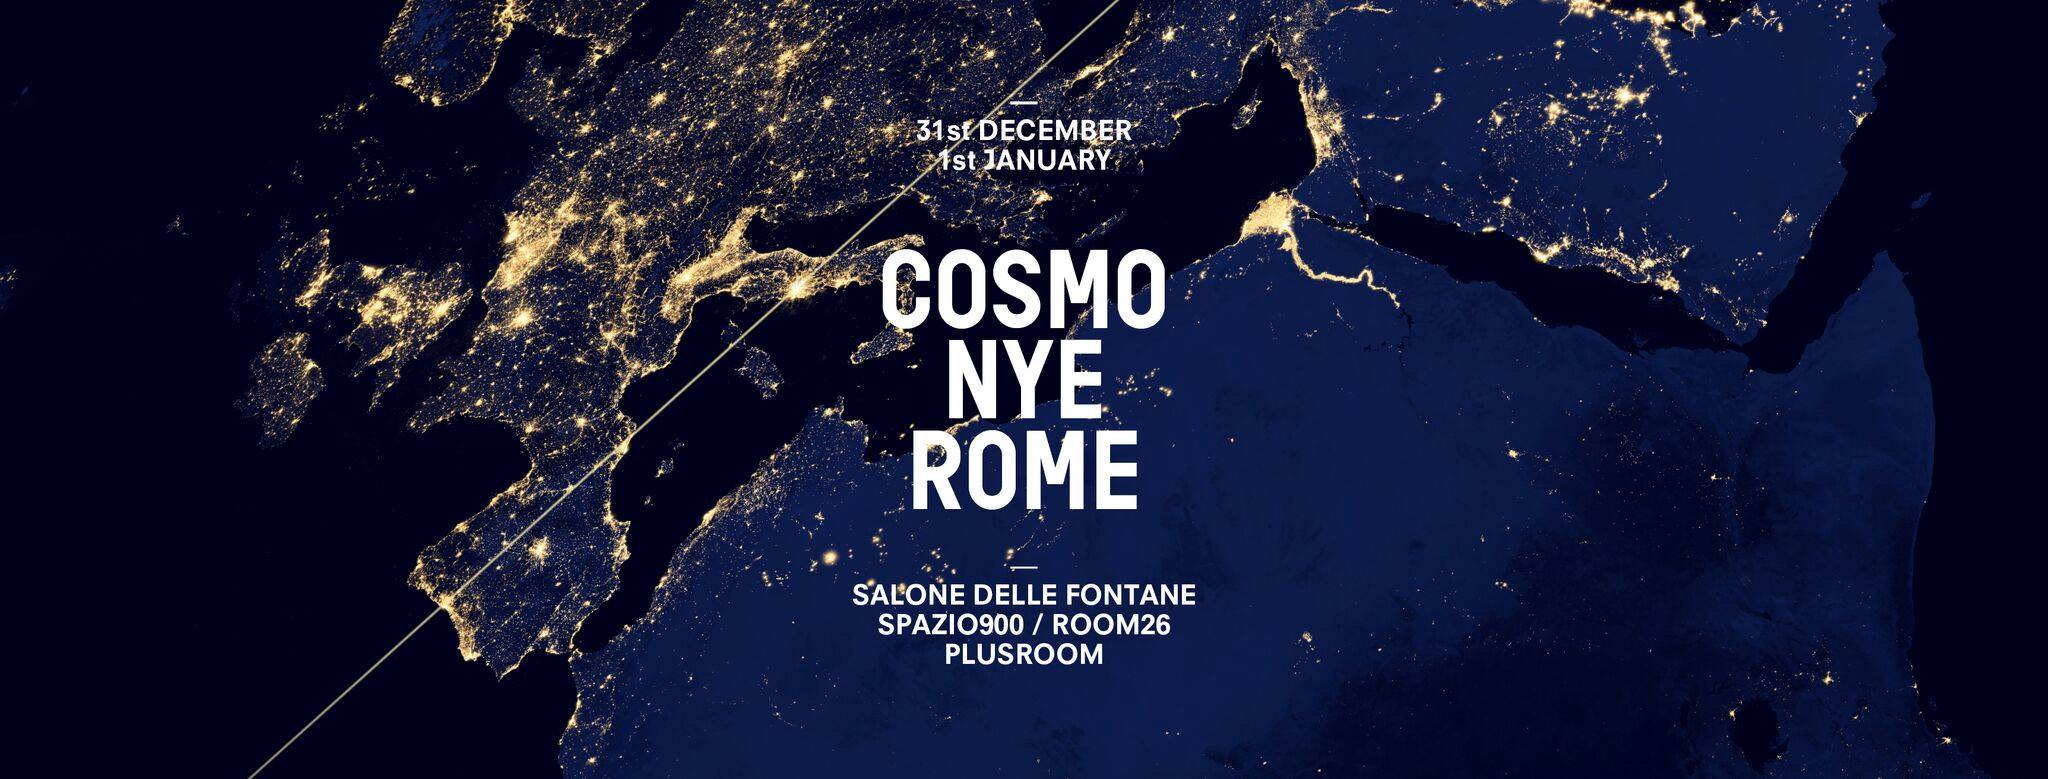 COSMO NYE Rome Electronic Official Event Capodanno 2017